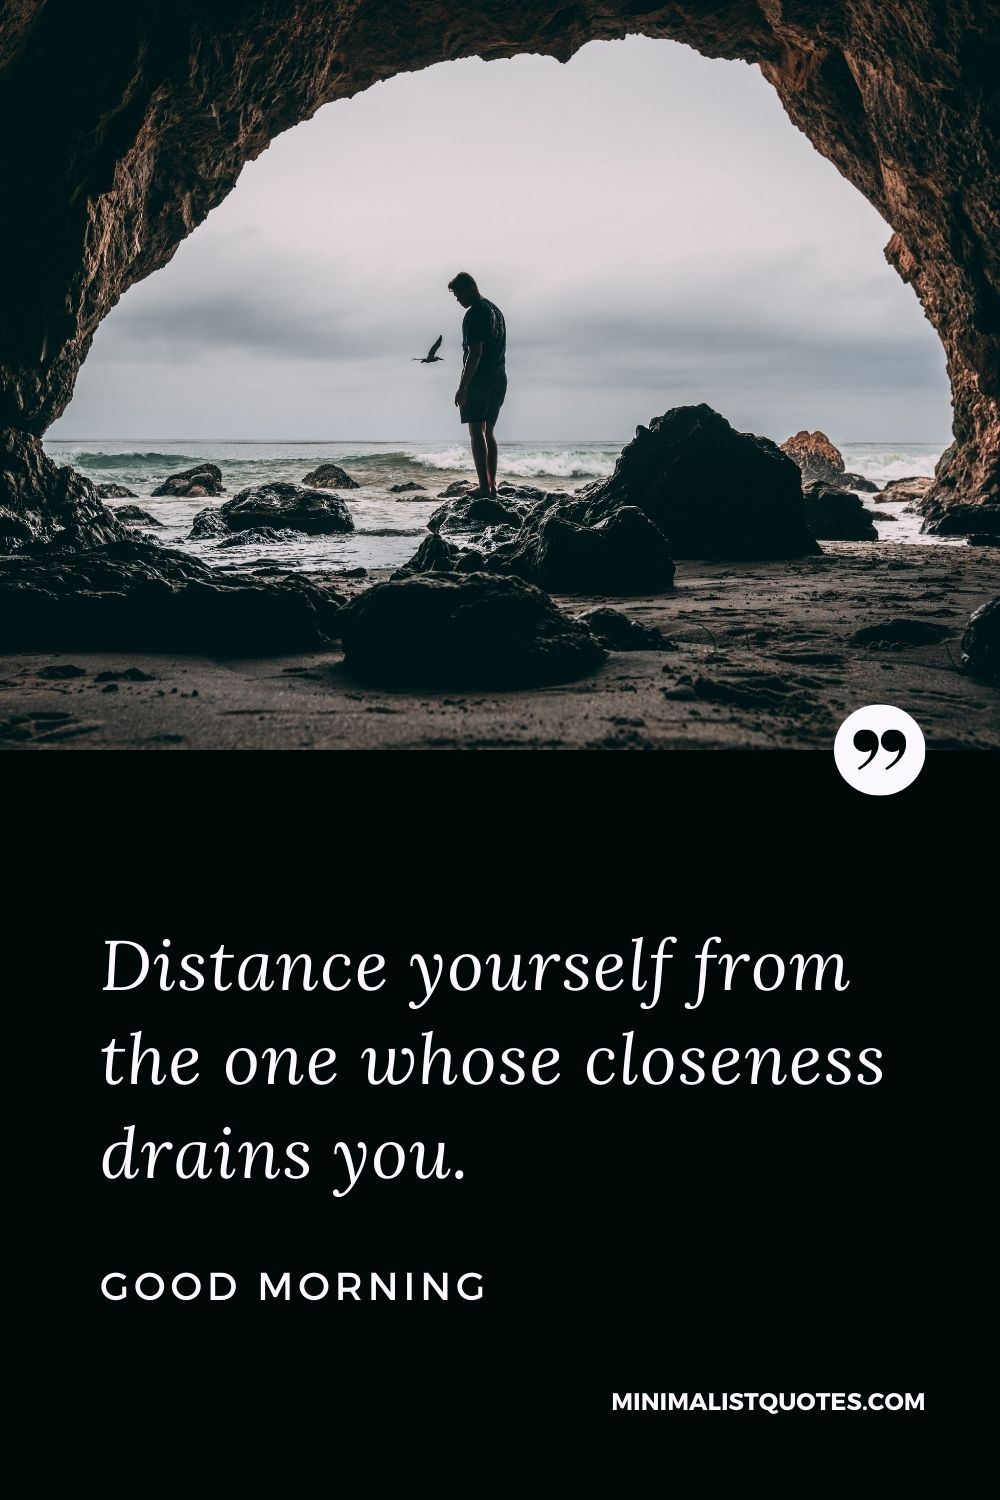 Good Morning Wish & Message With Image: Distance yourselffrom the one whose closeness drains you.